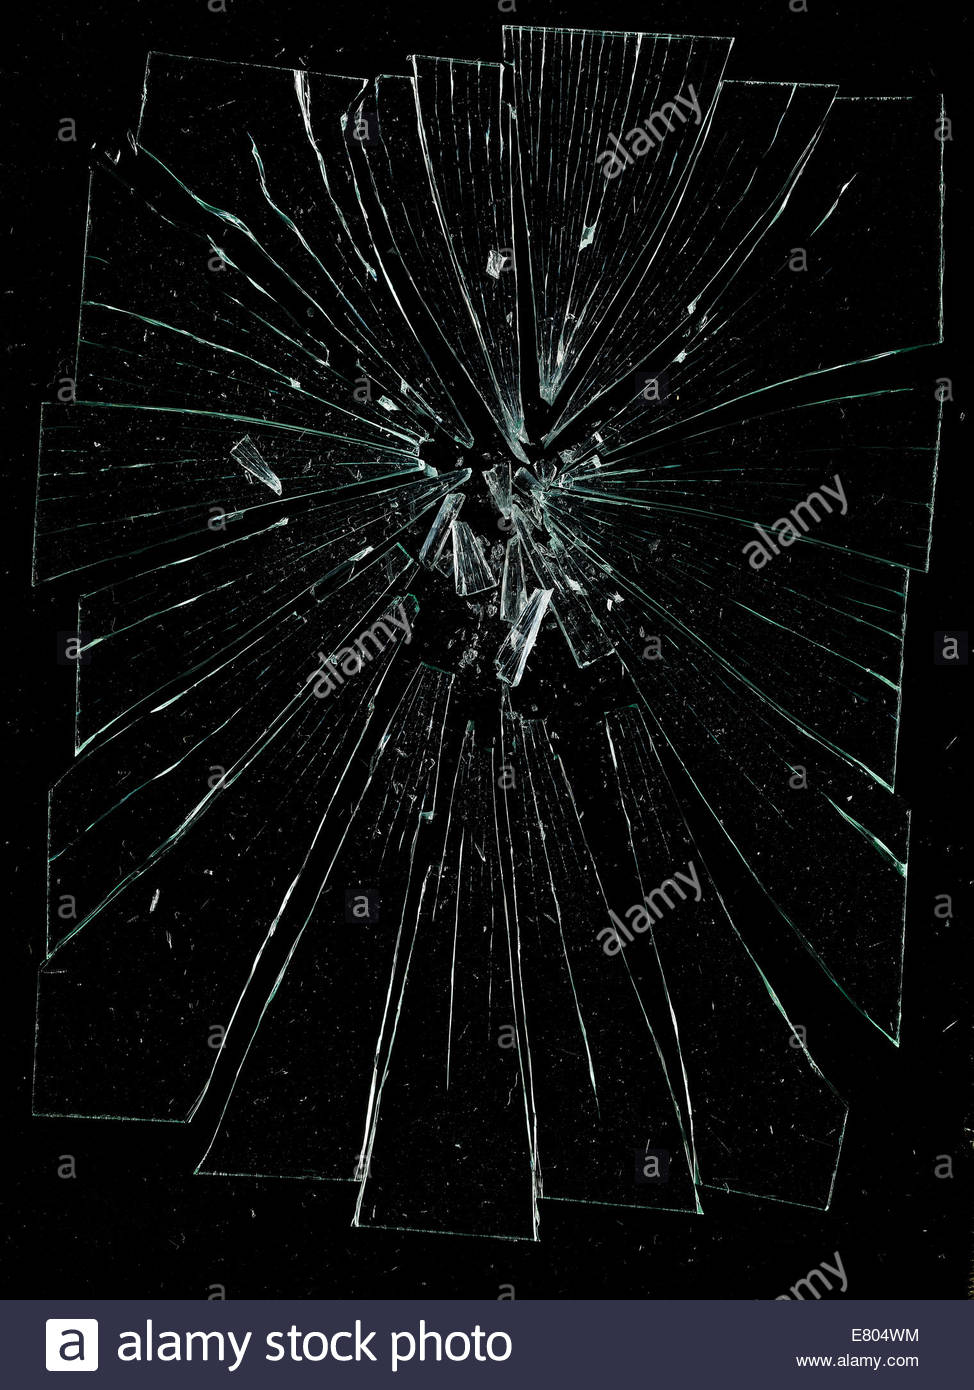 shattered into pieces, cracked & broken glass against black background - Stock Image